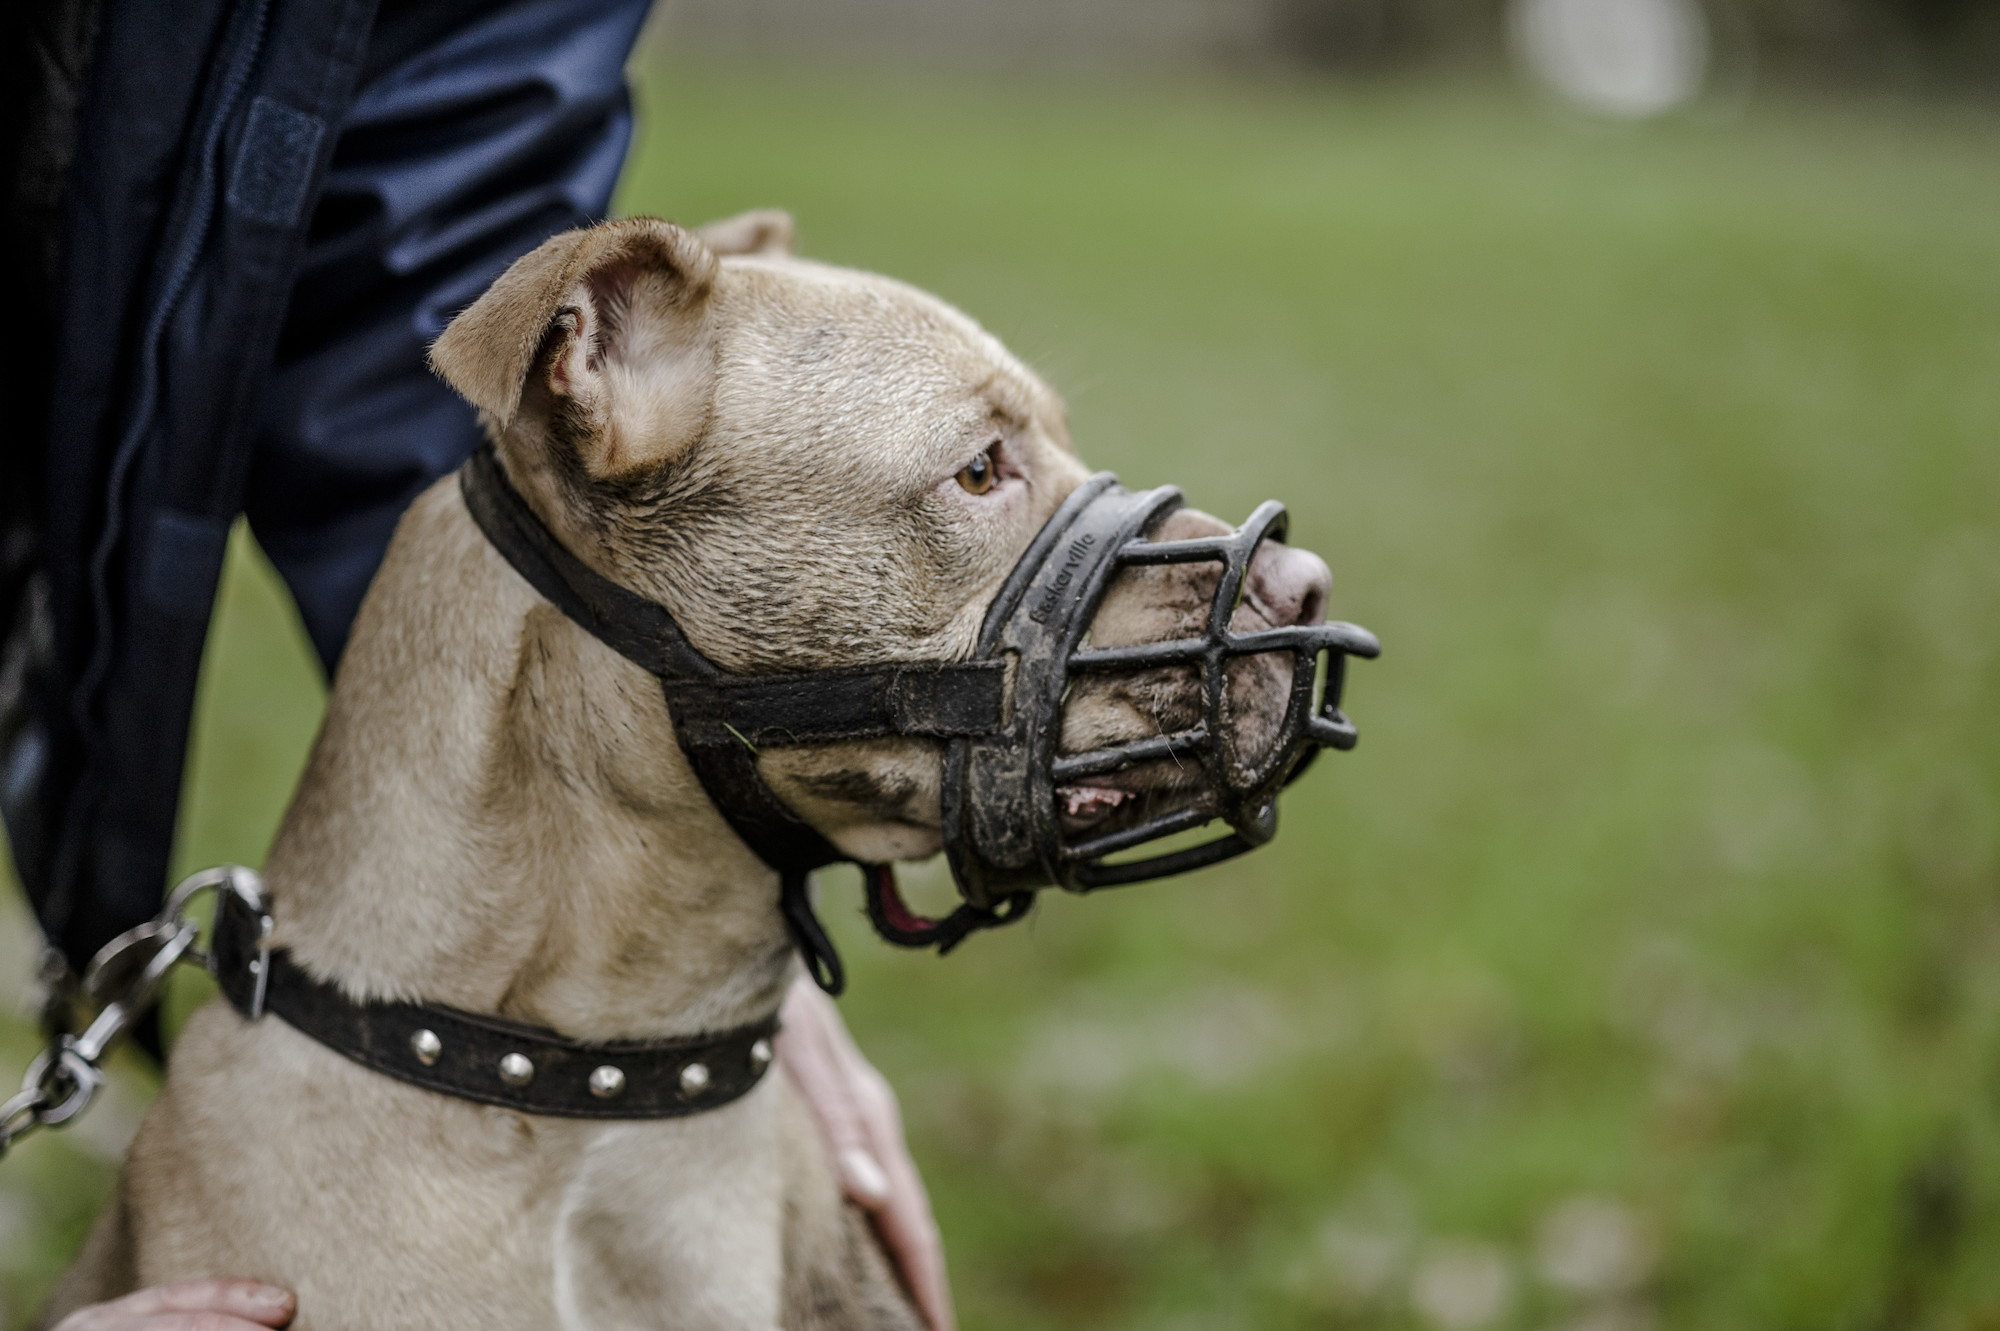 Muzzles For Huge Canines Bio thane Muzzle Is The Very Best Choice